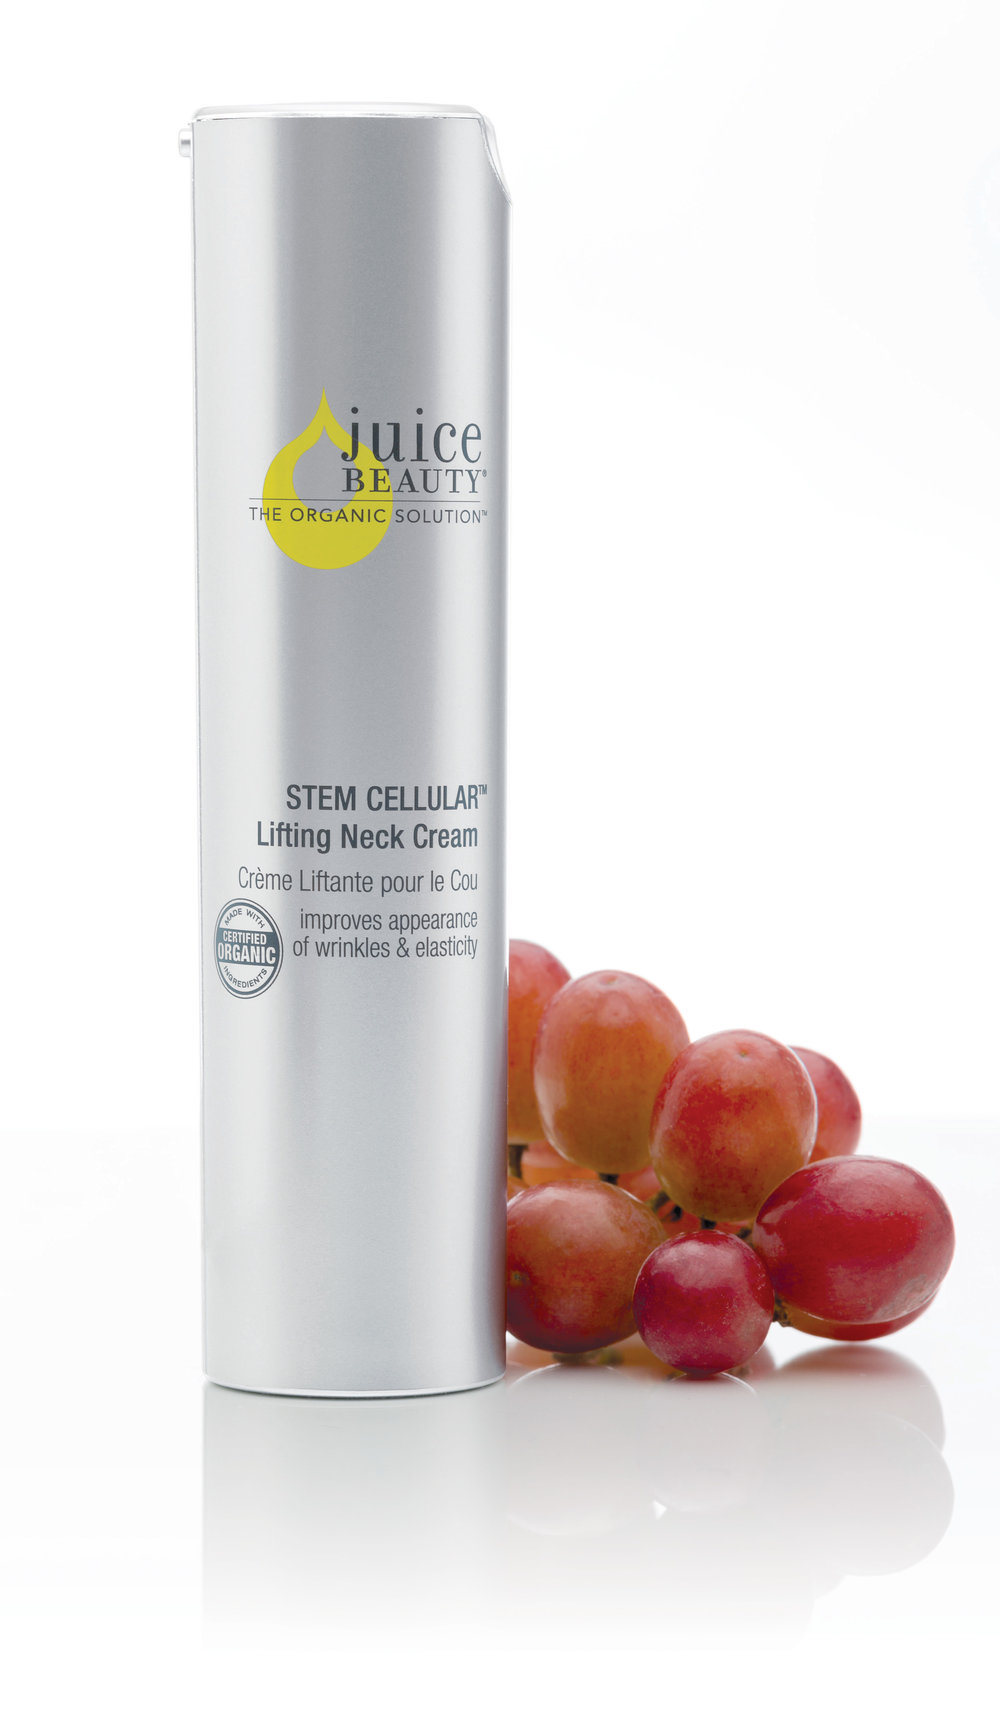 juice-beauty-stem-cellular-lifting-neck-cream